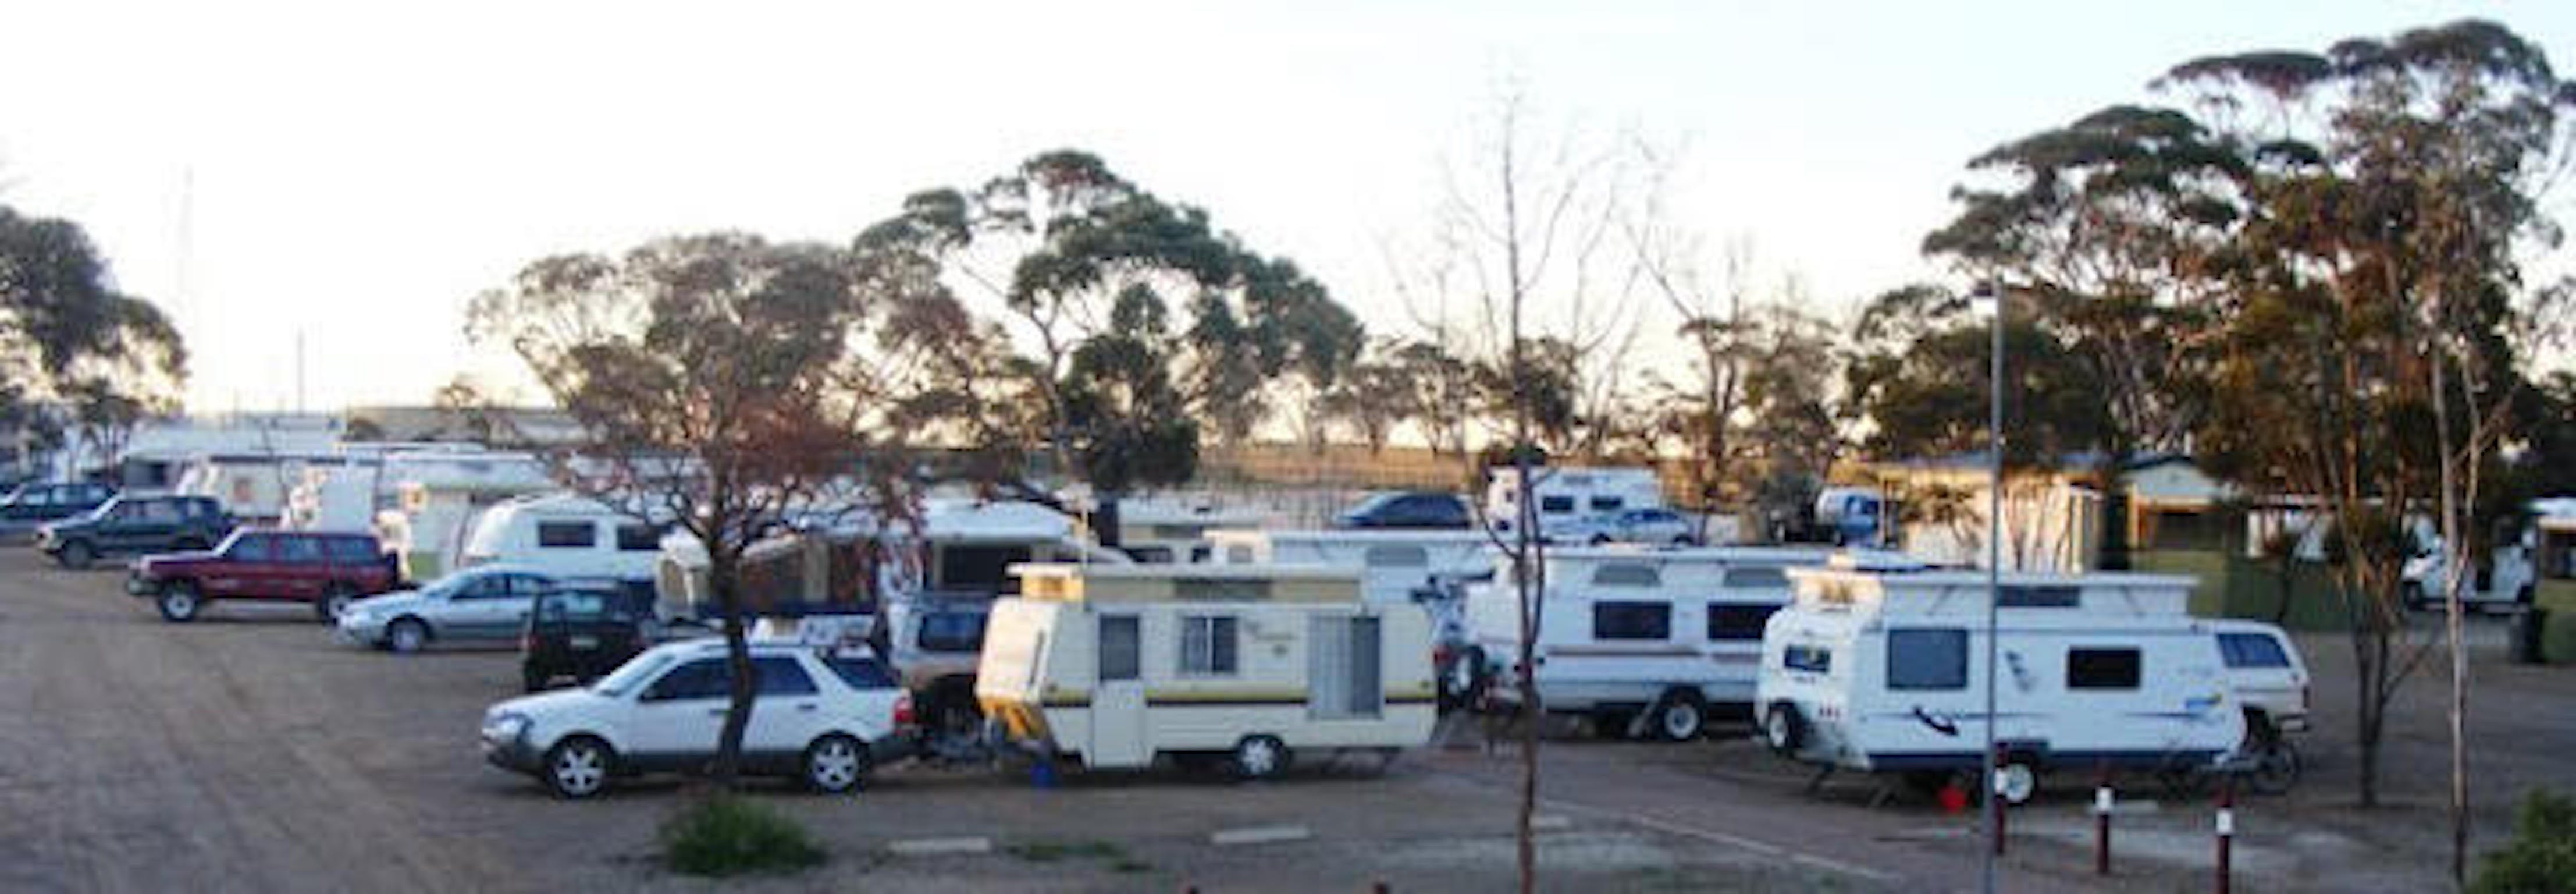 Woomera Traveller's Village and Caravan Park - ACT Tourism